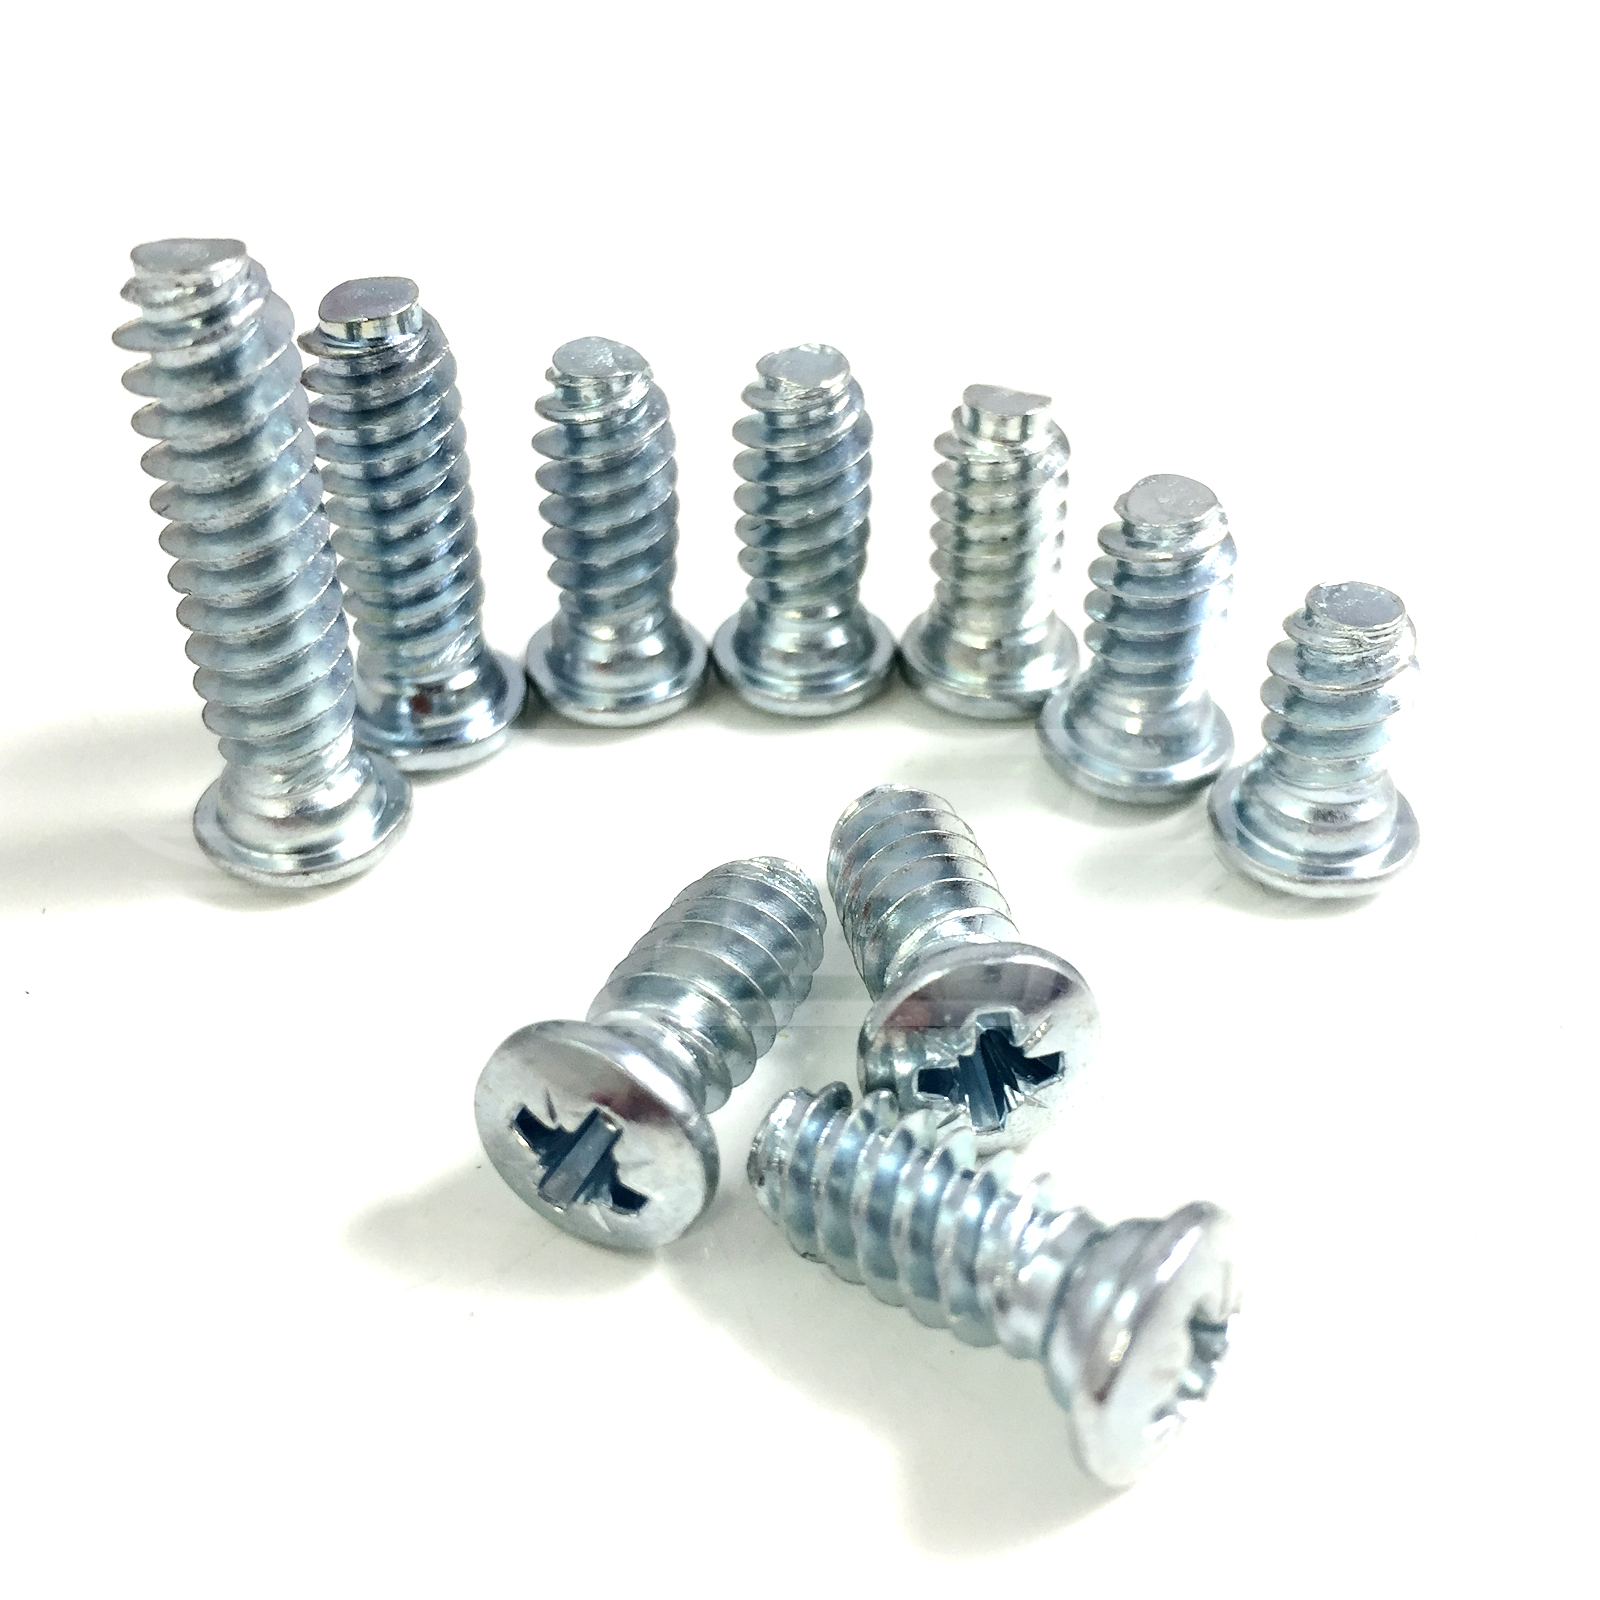 Heavy Duty Kitchen Cabinet Hinges M6 Euro Screws For Kitchen Cabinets Doors Wardrobes U0026 Cupboard